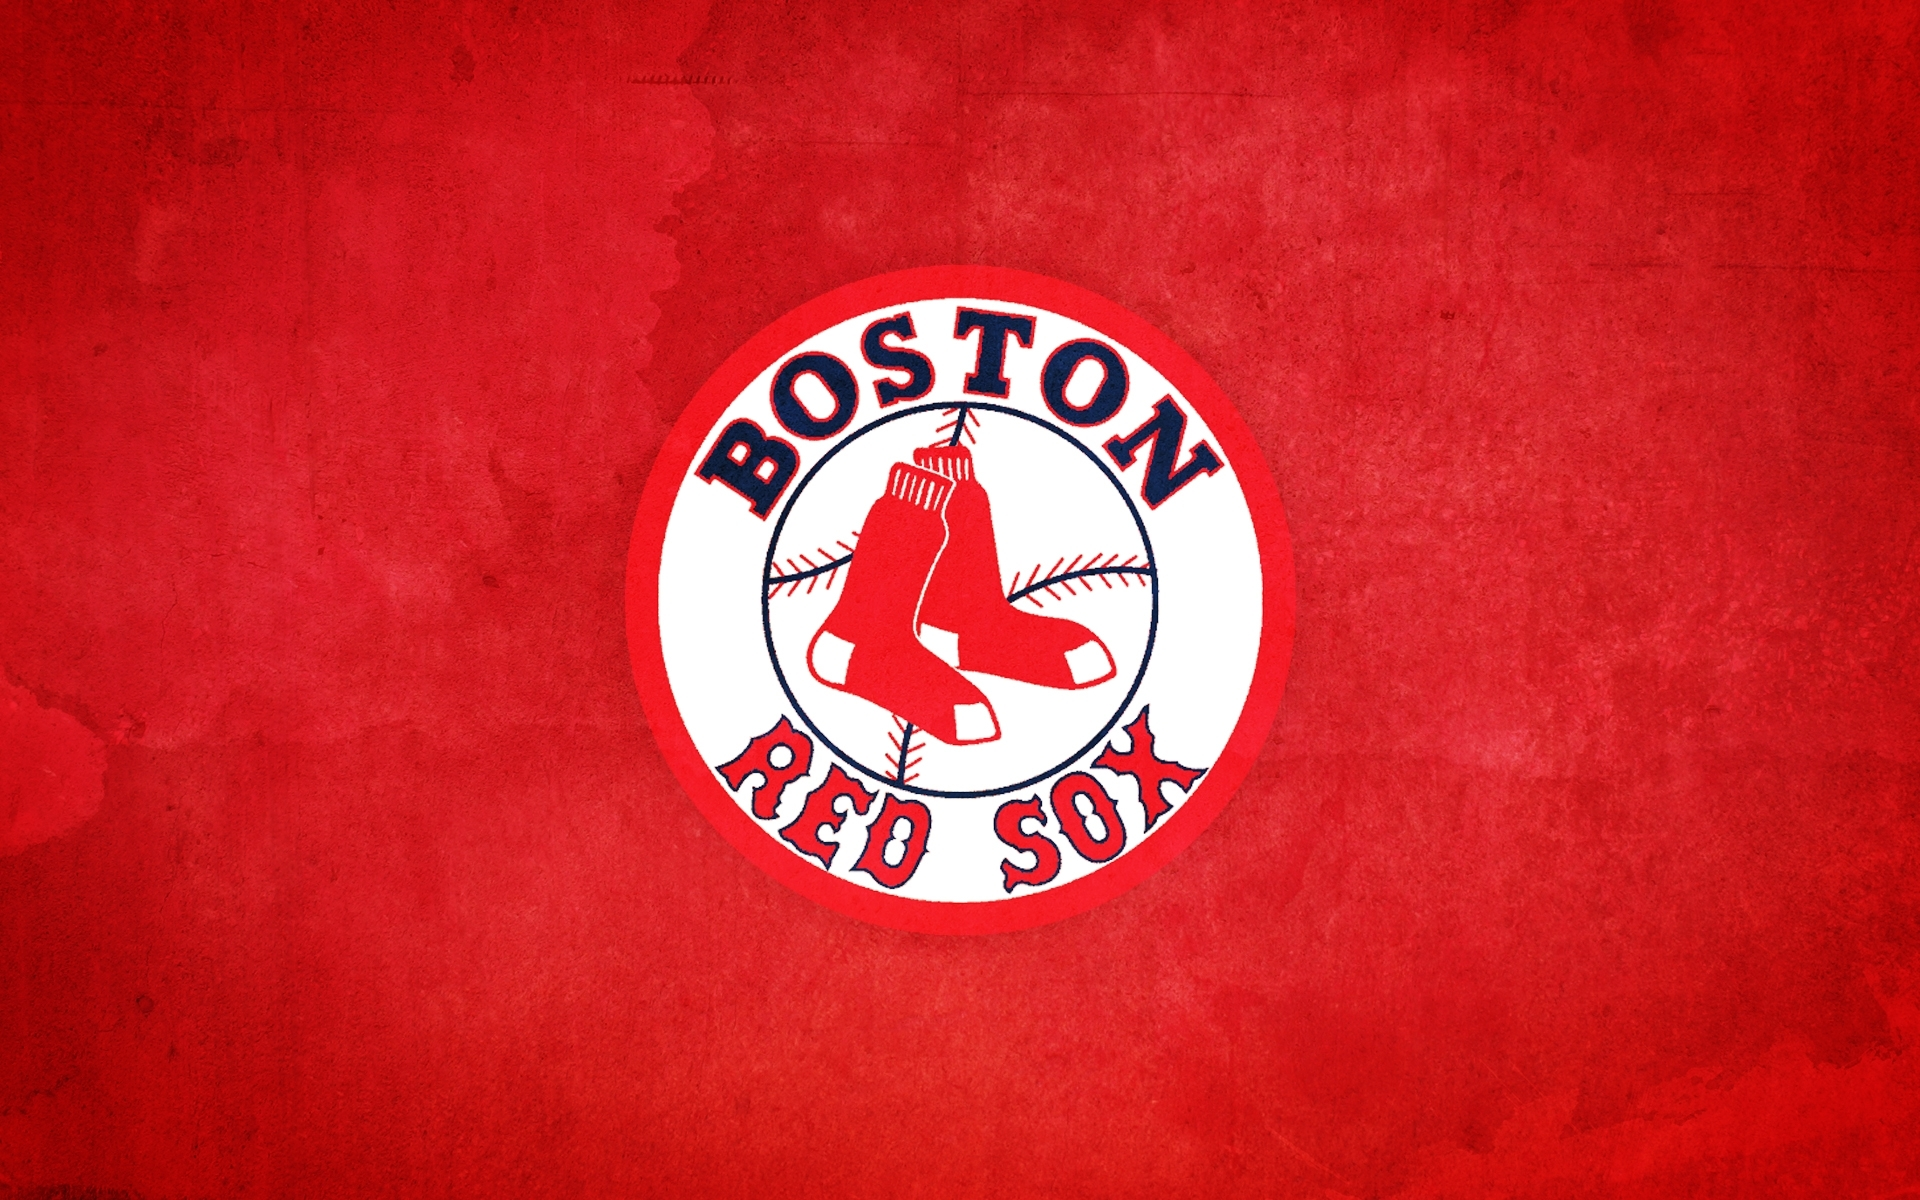 red-sox-wallpaper-hd-wallpapers - wallpaper.wiki